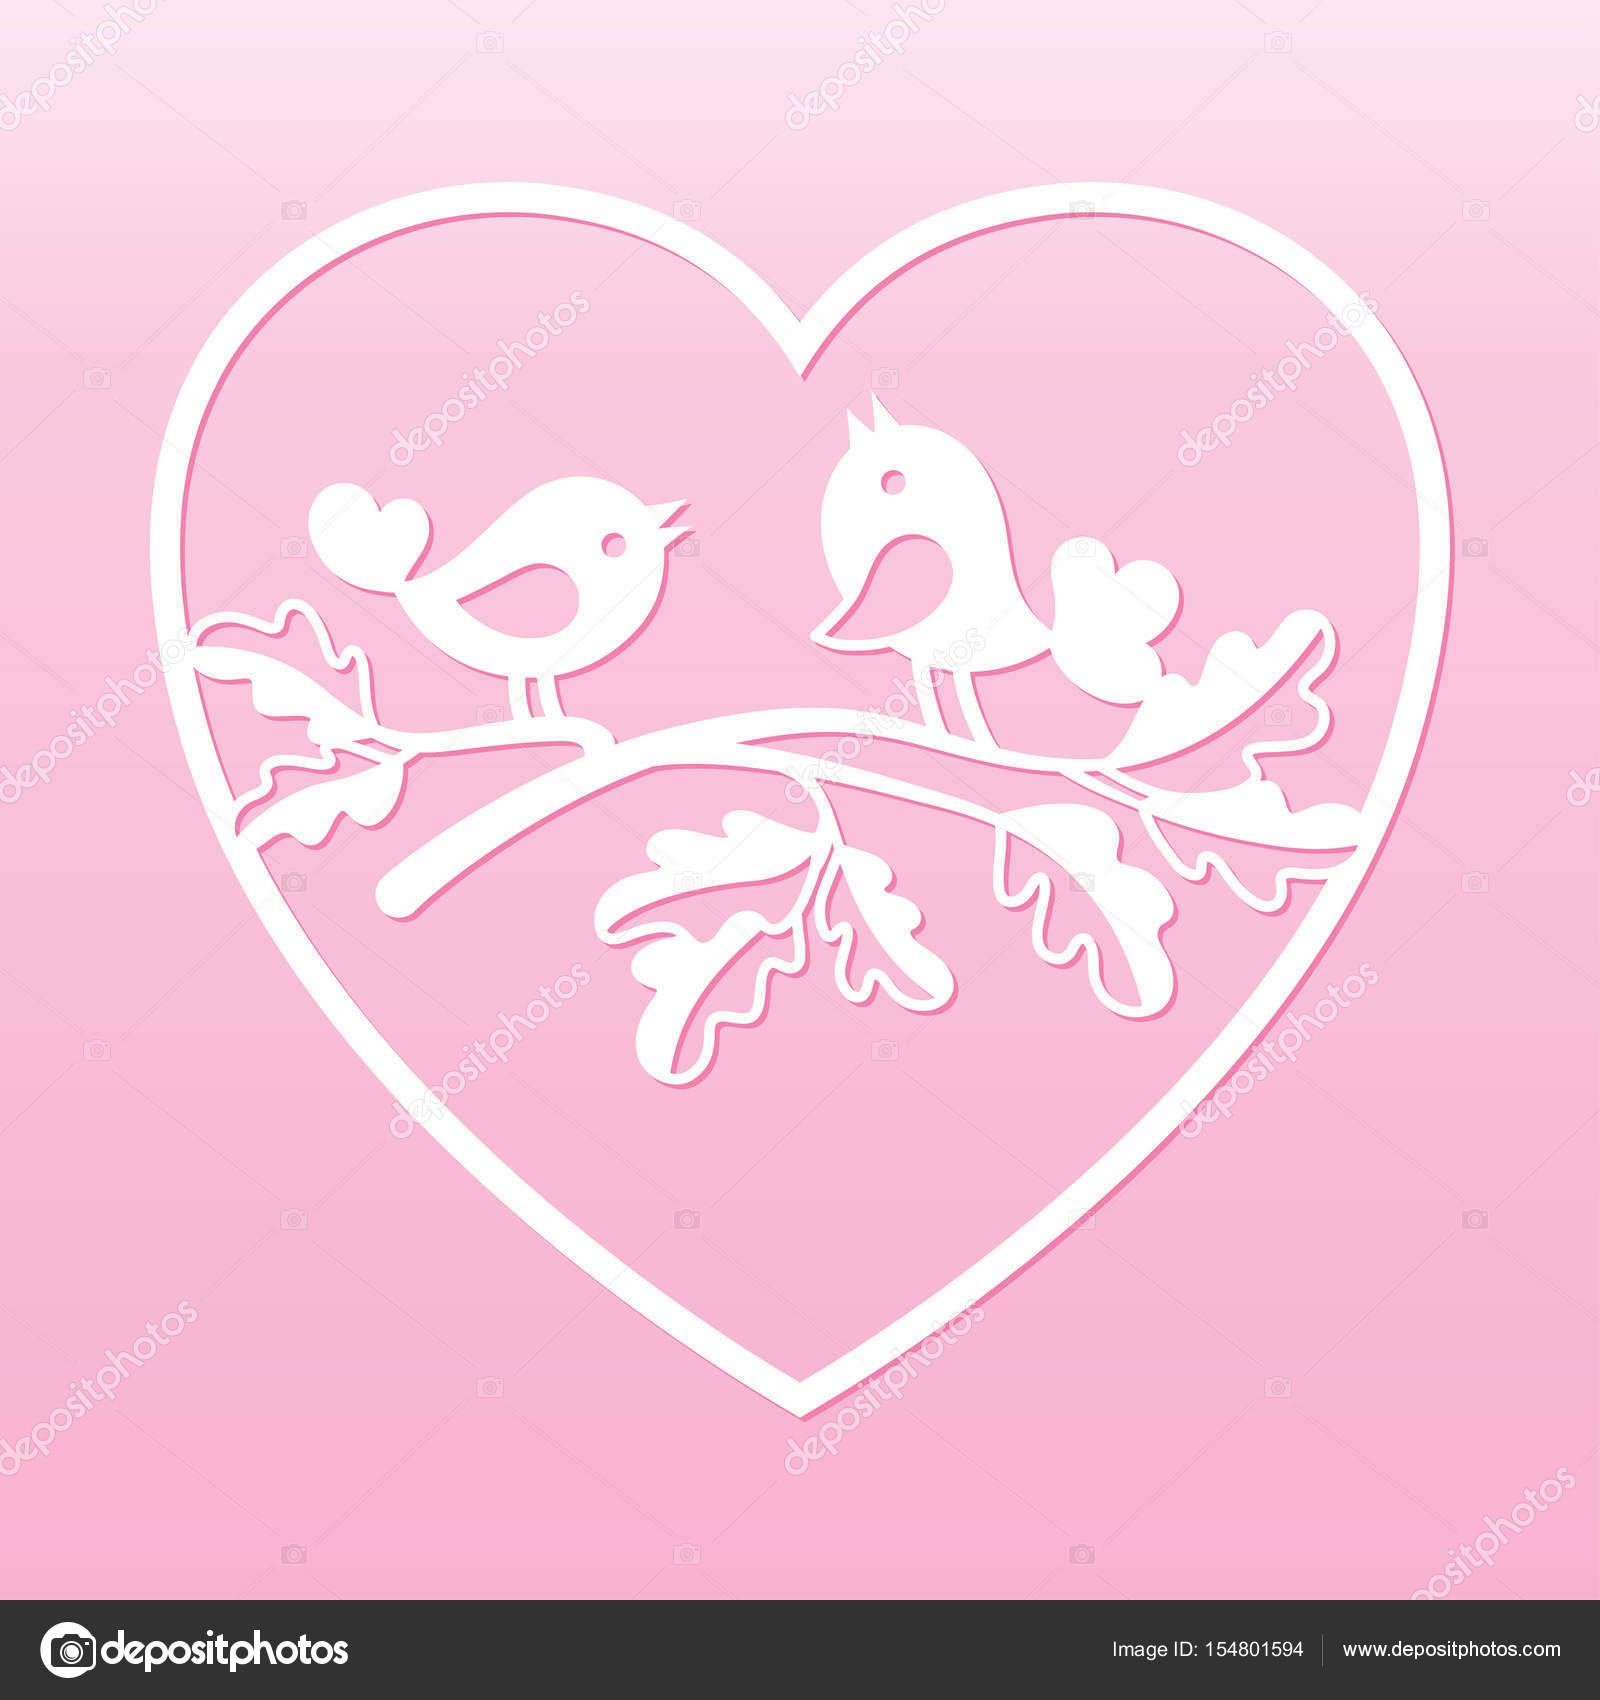 couple of doves on an oak branch inside the heart laser cutting template for greeting cards envelopes wedding invitations interior elements vector by